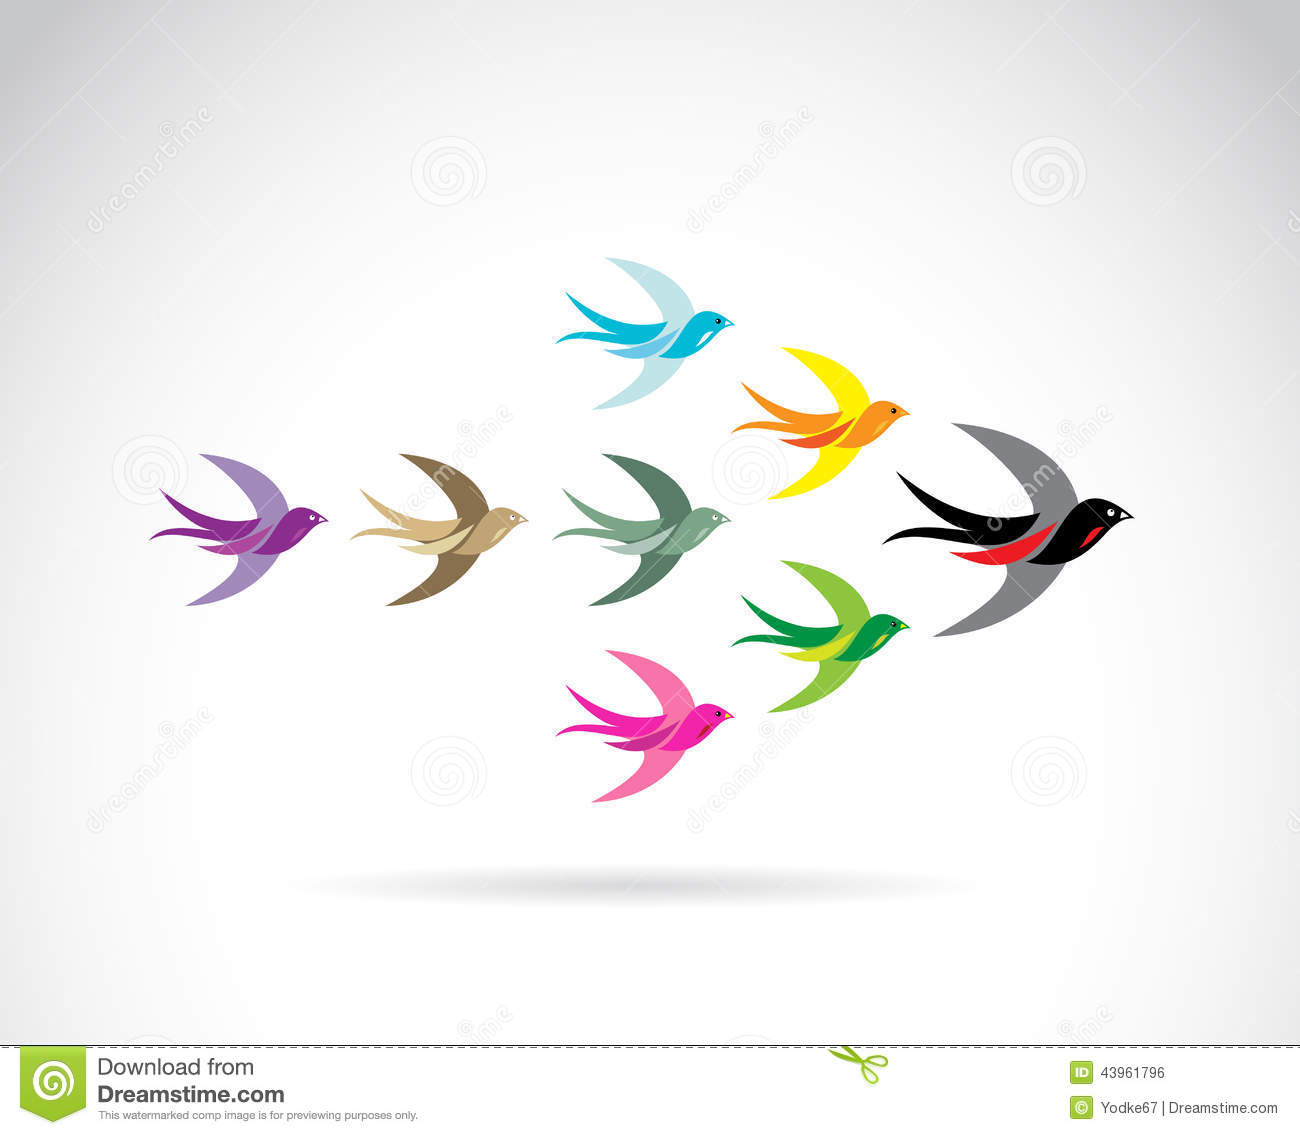 Vector Group Of Colorful Swallow Birds. Stock Vector - Image: 43961796 Group Of Colorful Birds